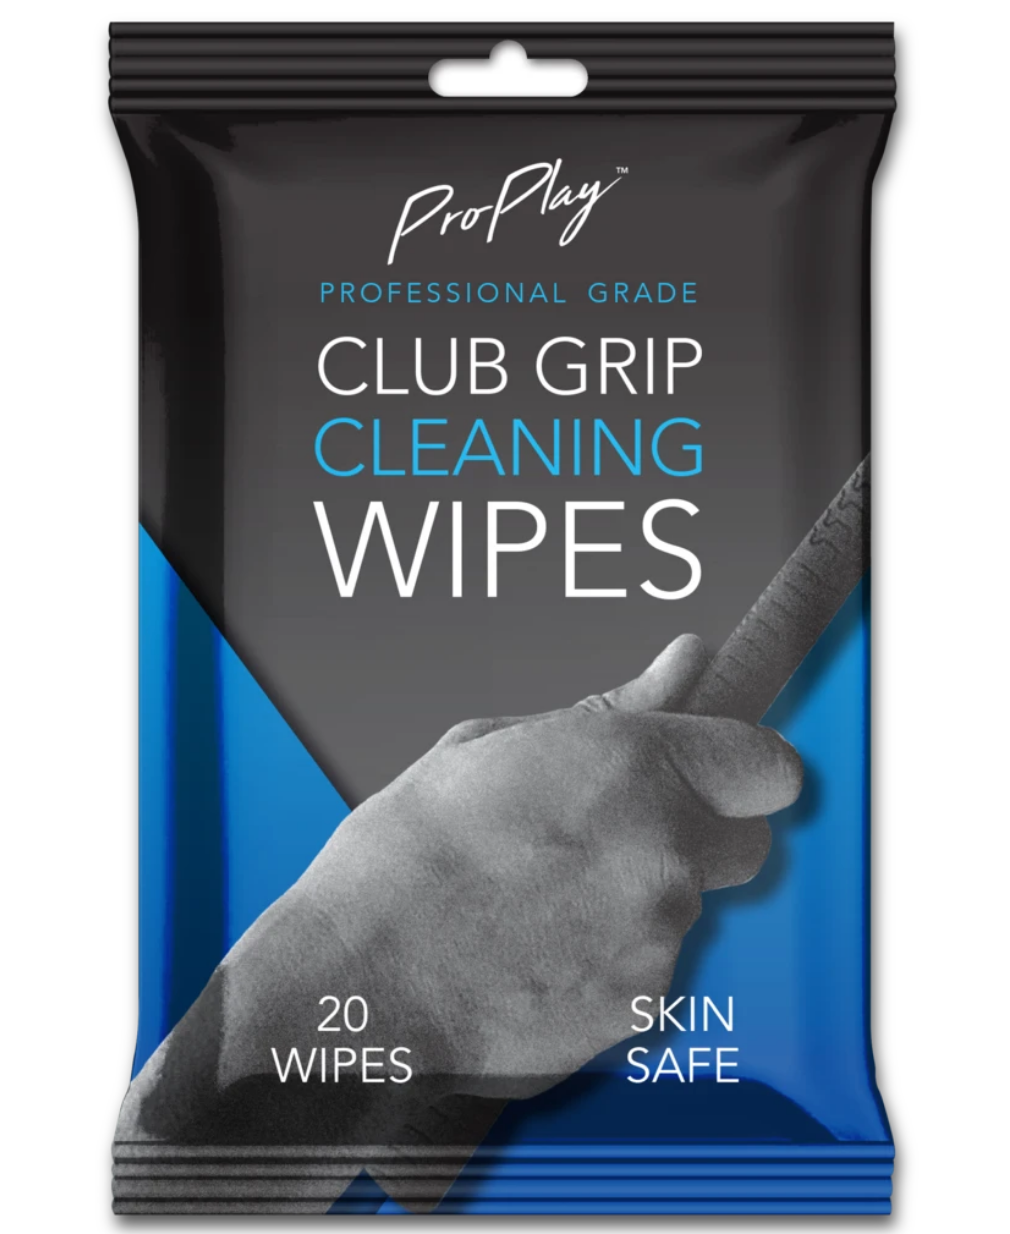 Club Grip Cleaning Wipes